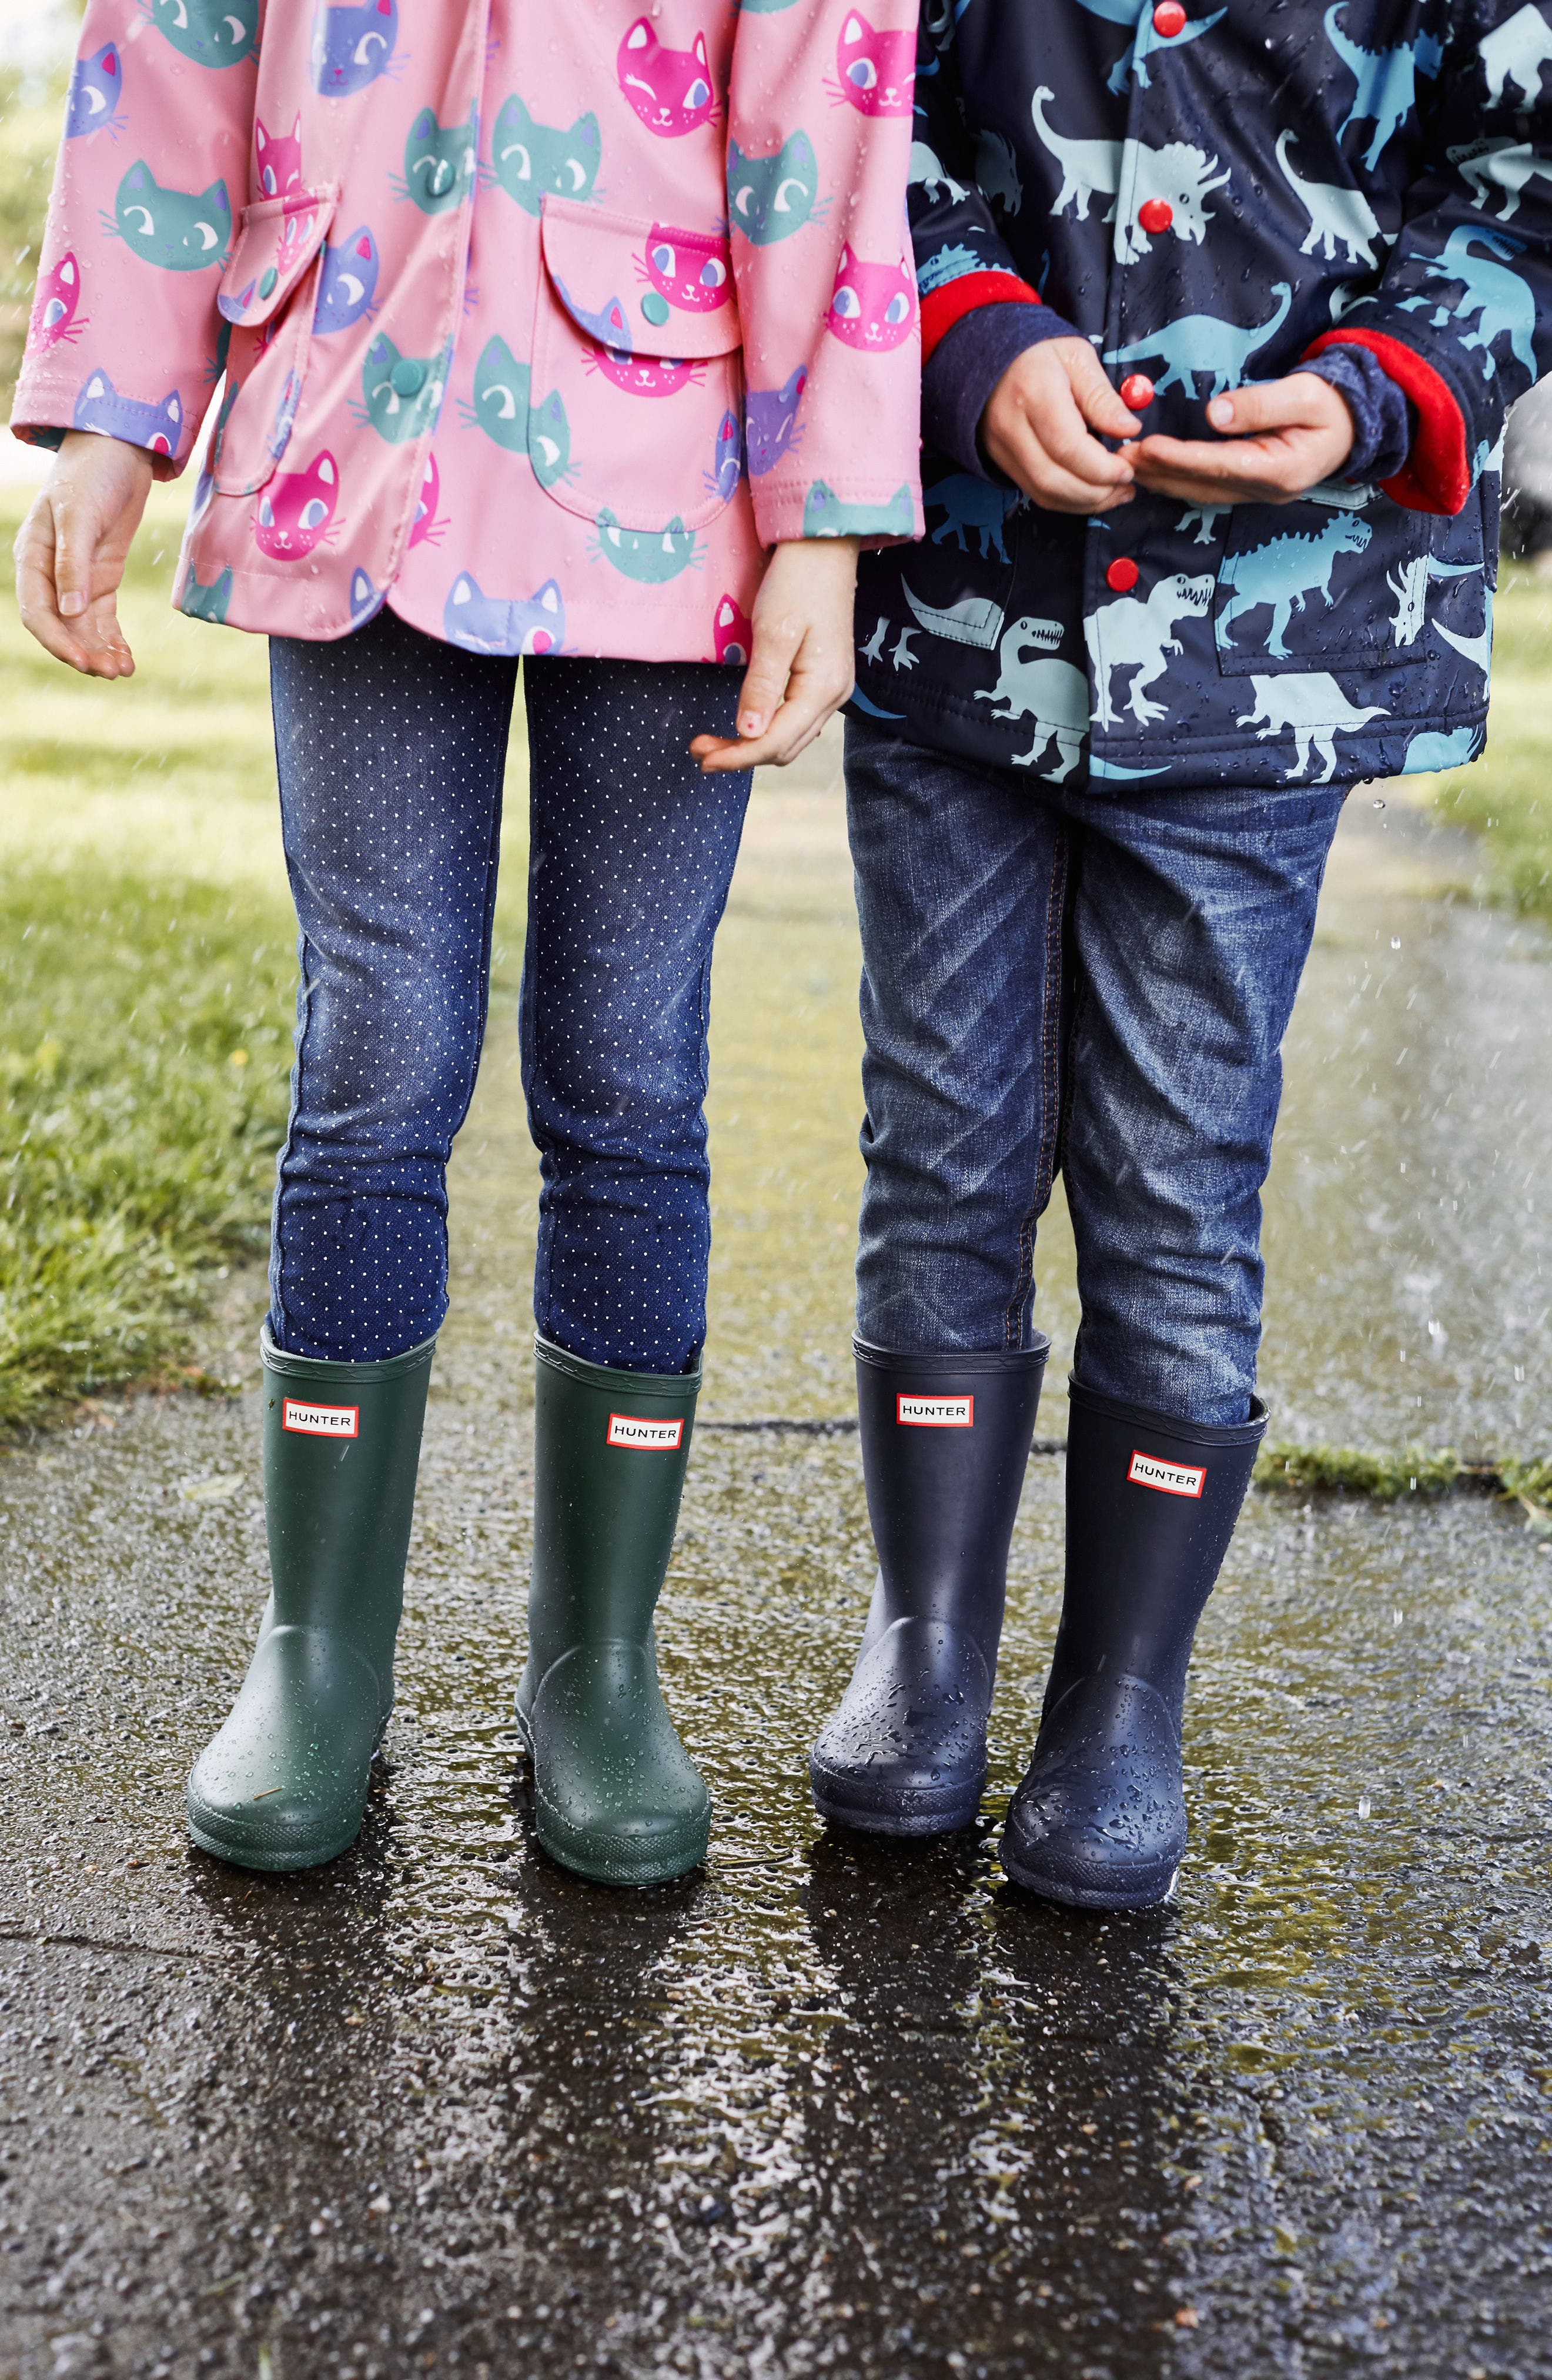 First Classic Waterproof Rain Boot,                             Alternate thumbnail 7, color,                             BRIGHT PINK